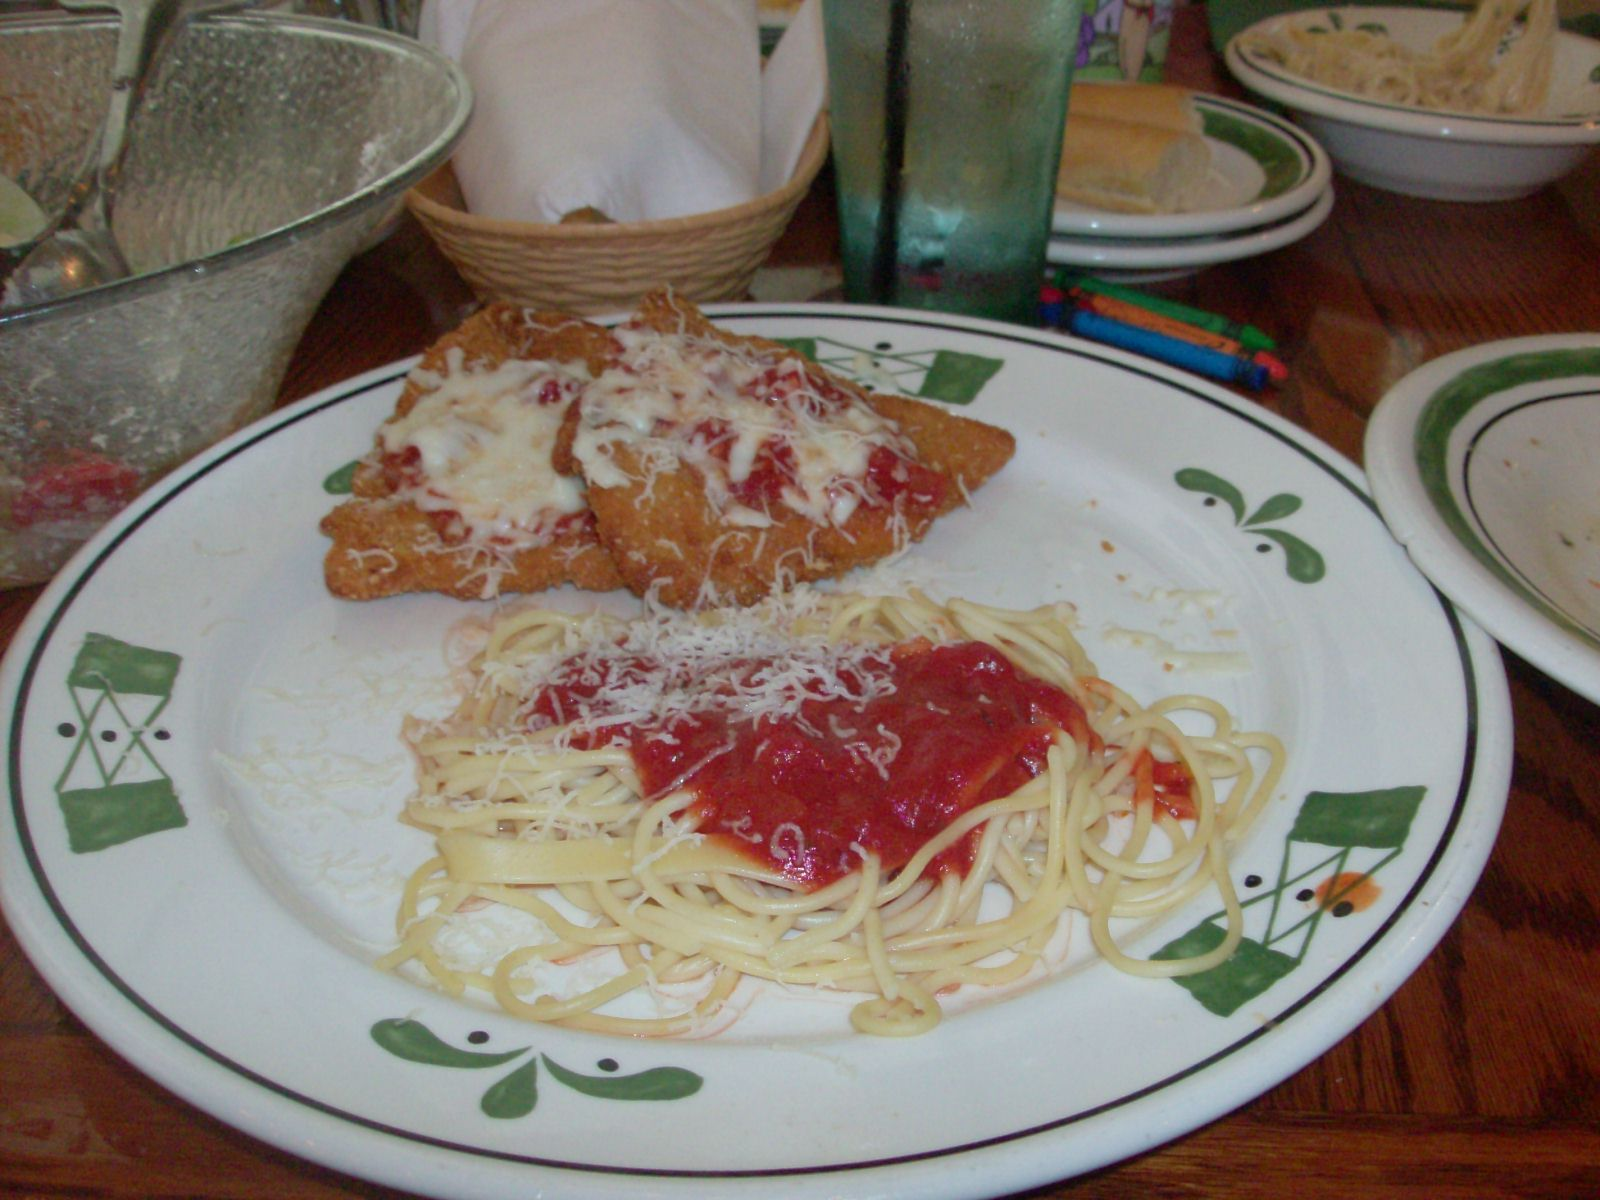 Olive Garden Copycat Recipes Chicken Parmigiana Wasn 39 T Terrible But Wasn 39 T Worth Making